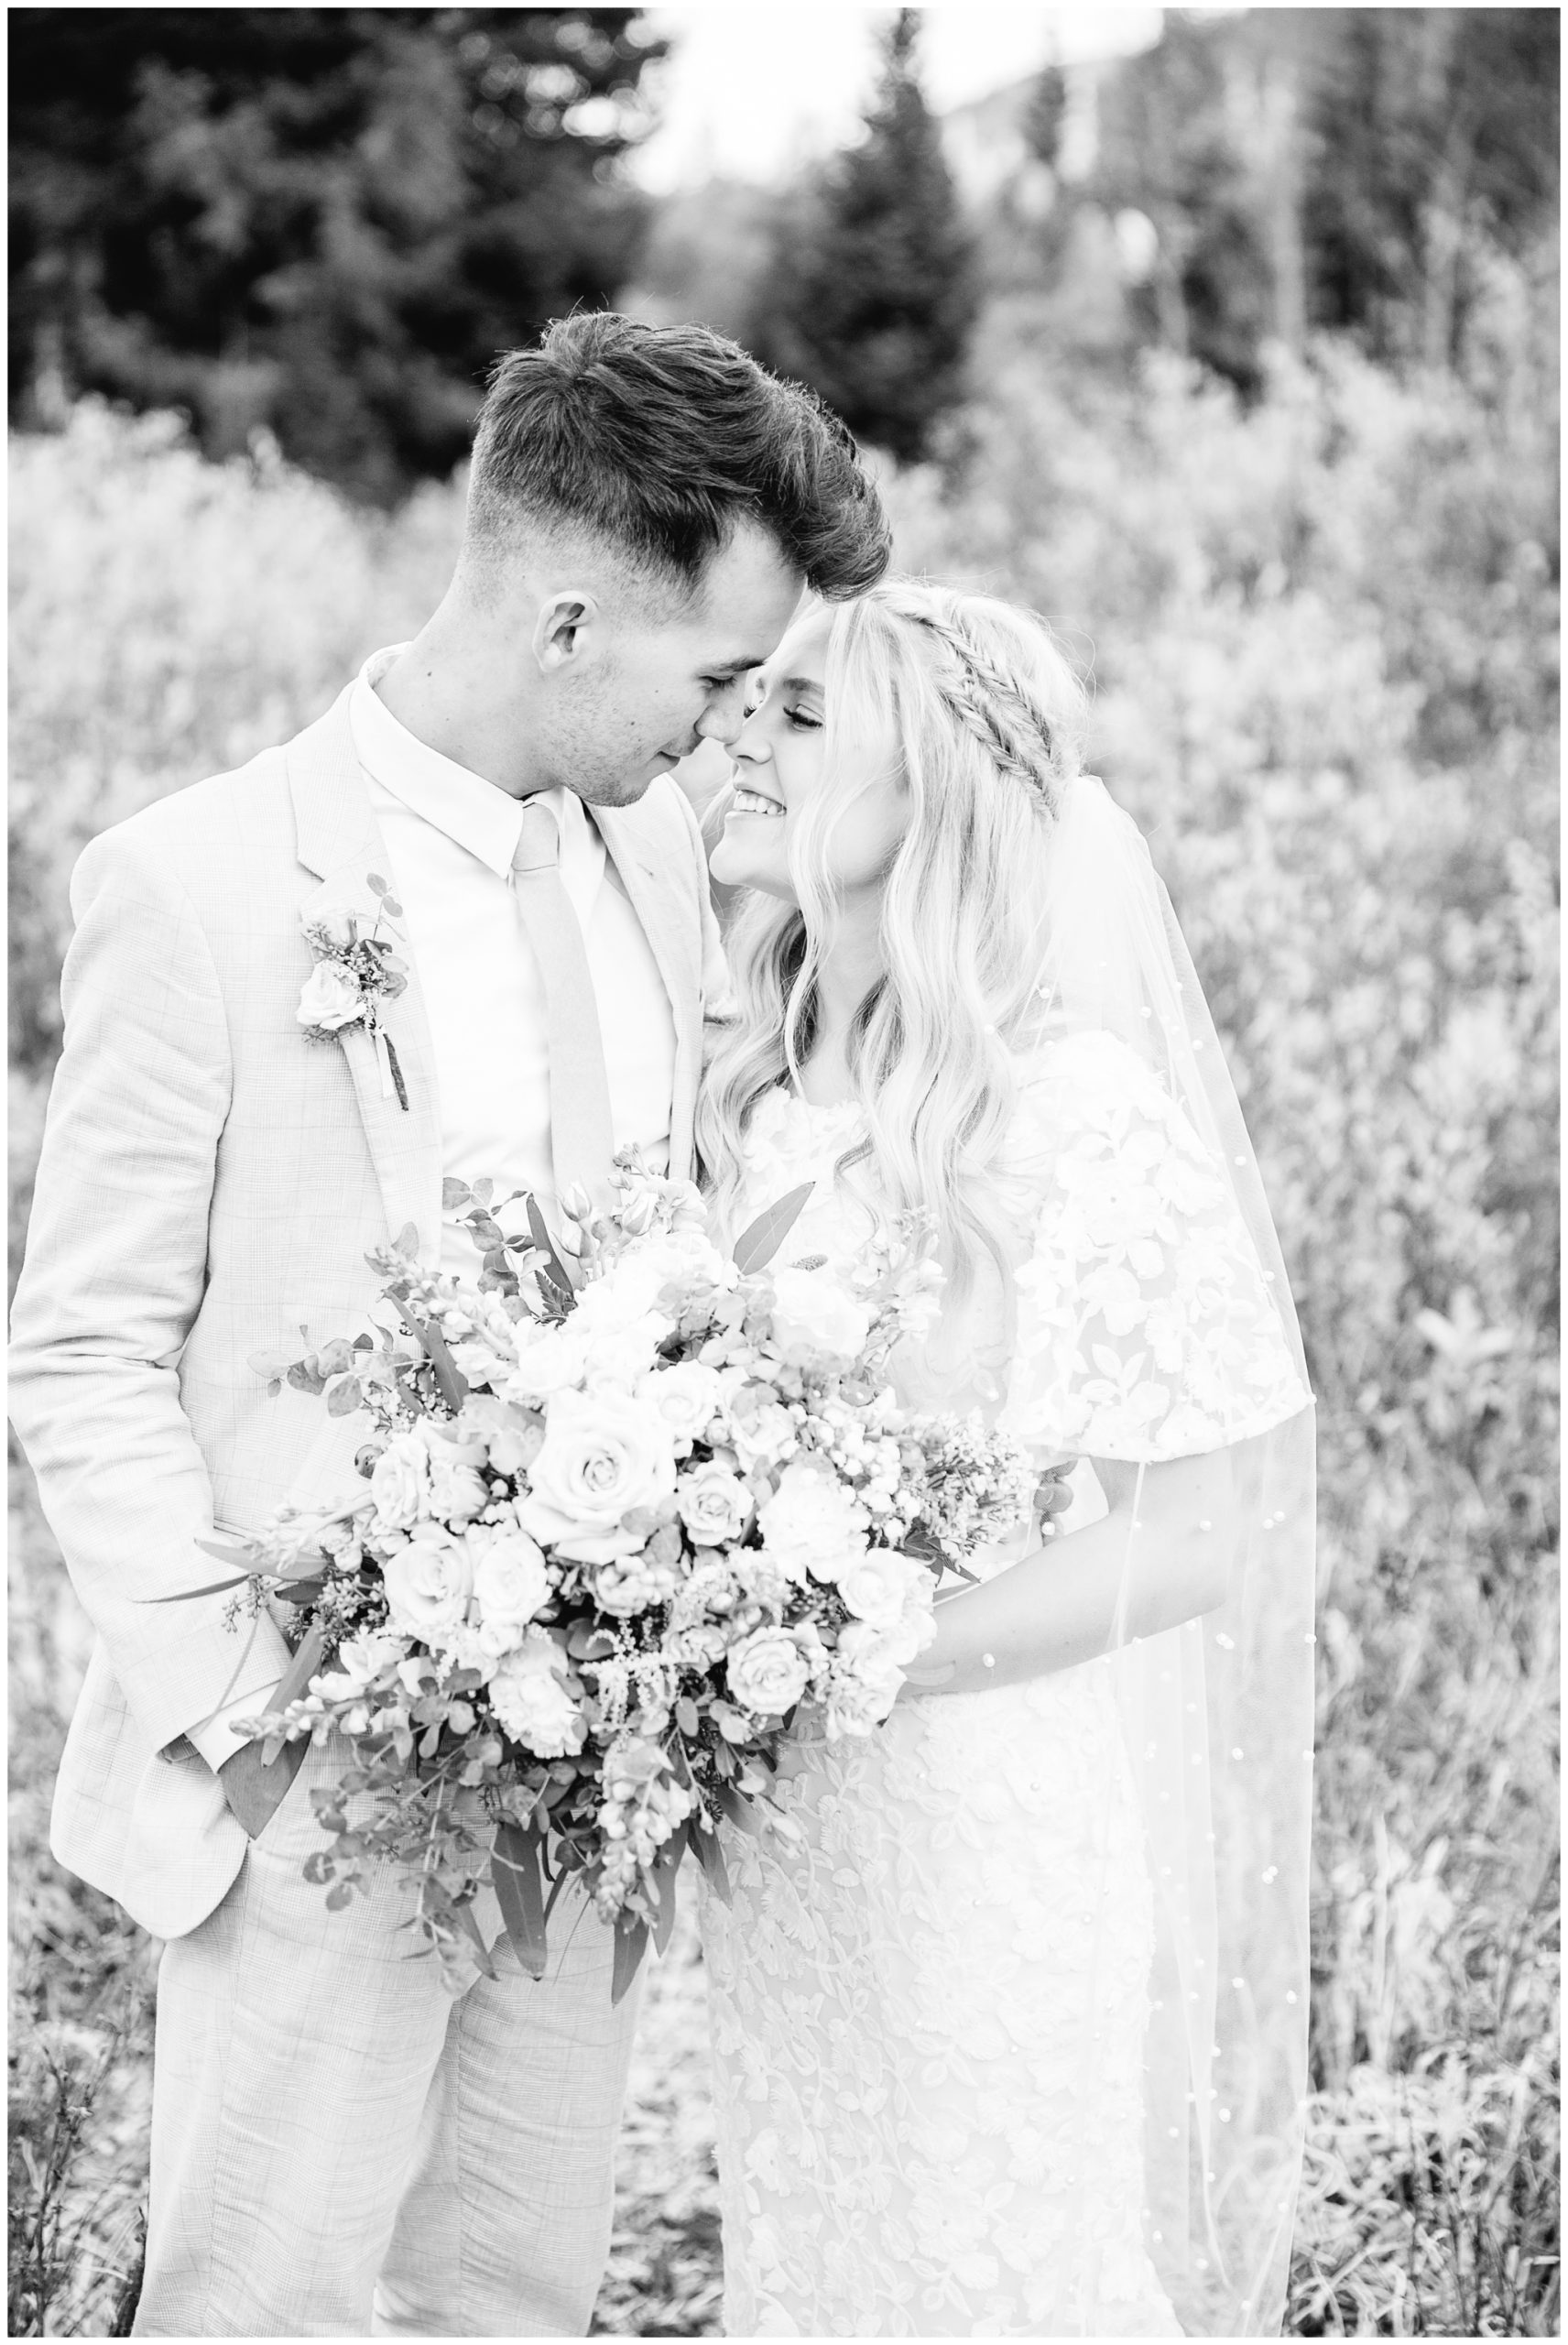 Bride and groom about to kiss on their wedding day